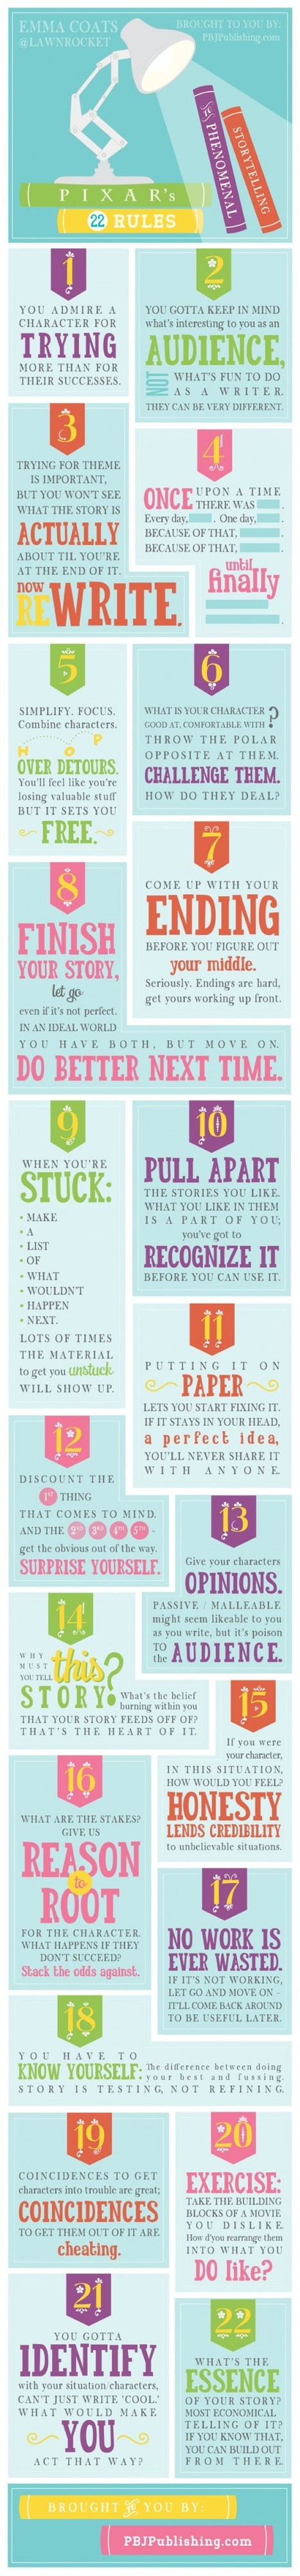 Pixar's 22 Rules to Phenomenal Storytelling [INFOGRAPHIC] | The Story | Scoop.it